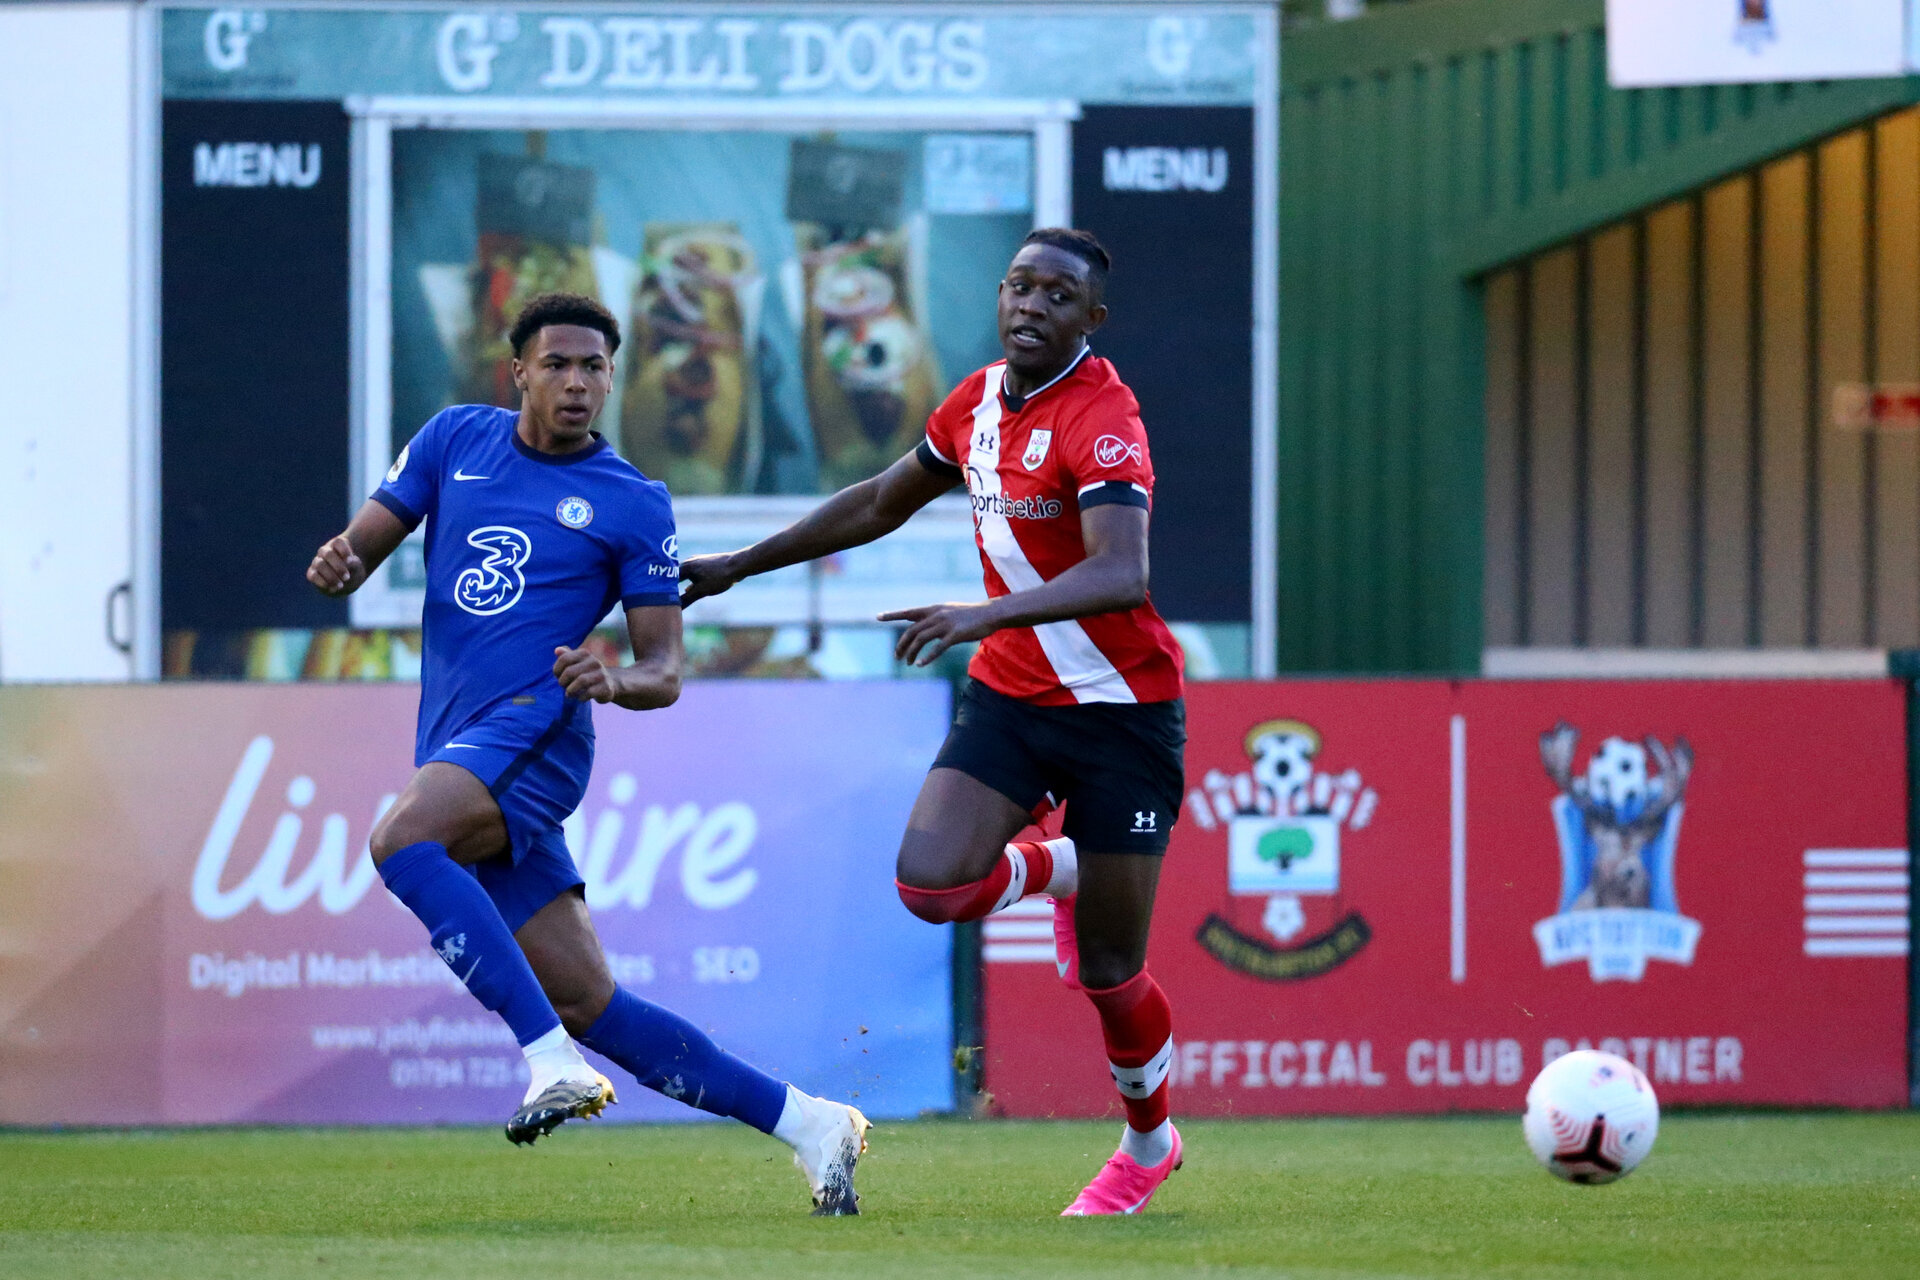 SOUTHAMPTON, ENGLAND - SEPTEMBER 18: Dan N'Lundulu (R) of Southampton during the Premier League 2 match between Southampton FC B Team and Chelsea FC at Snows Stadium on September 18, 2020 in Southampton, England. (Photo by Isabelle Field/Southampton FC via Getty Images)